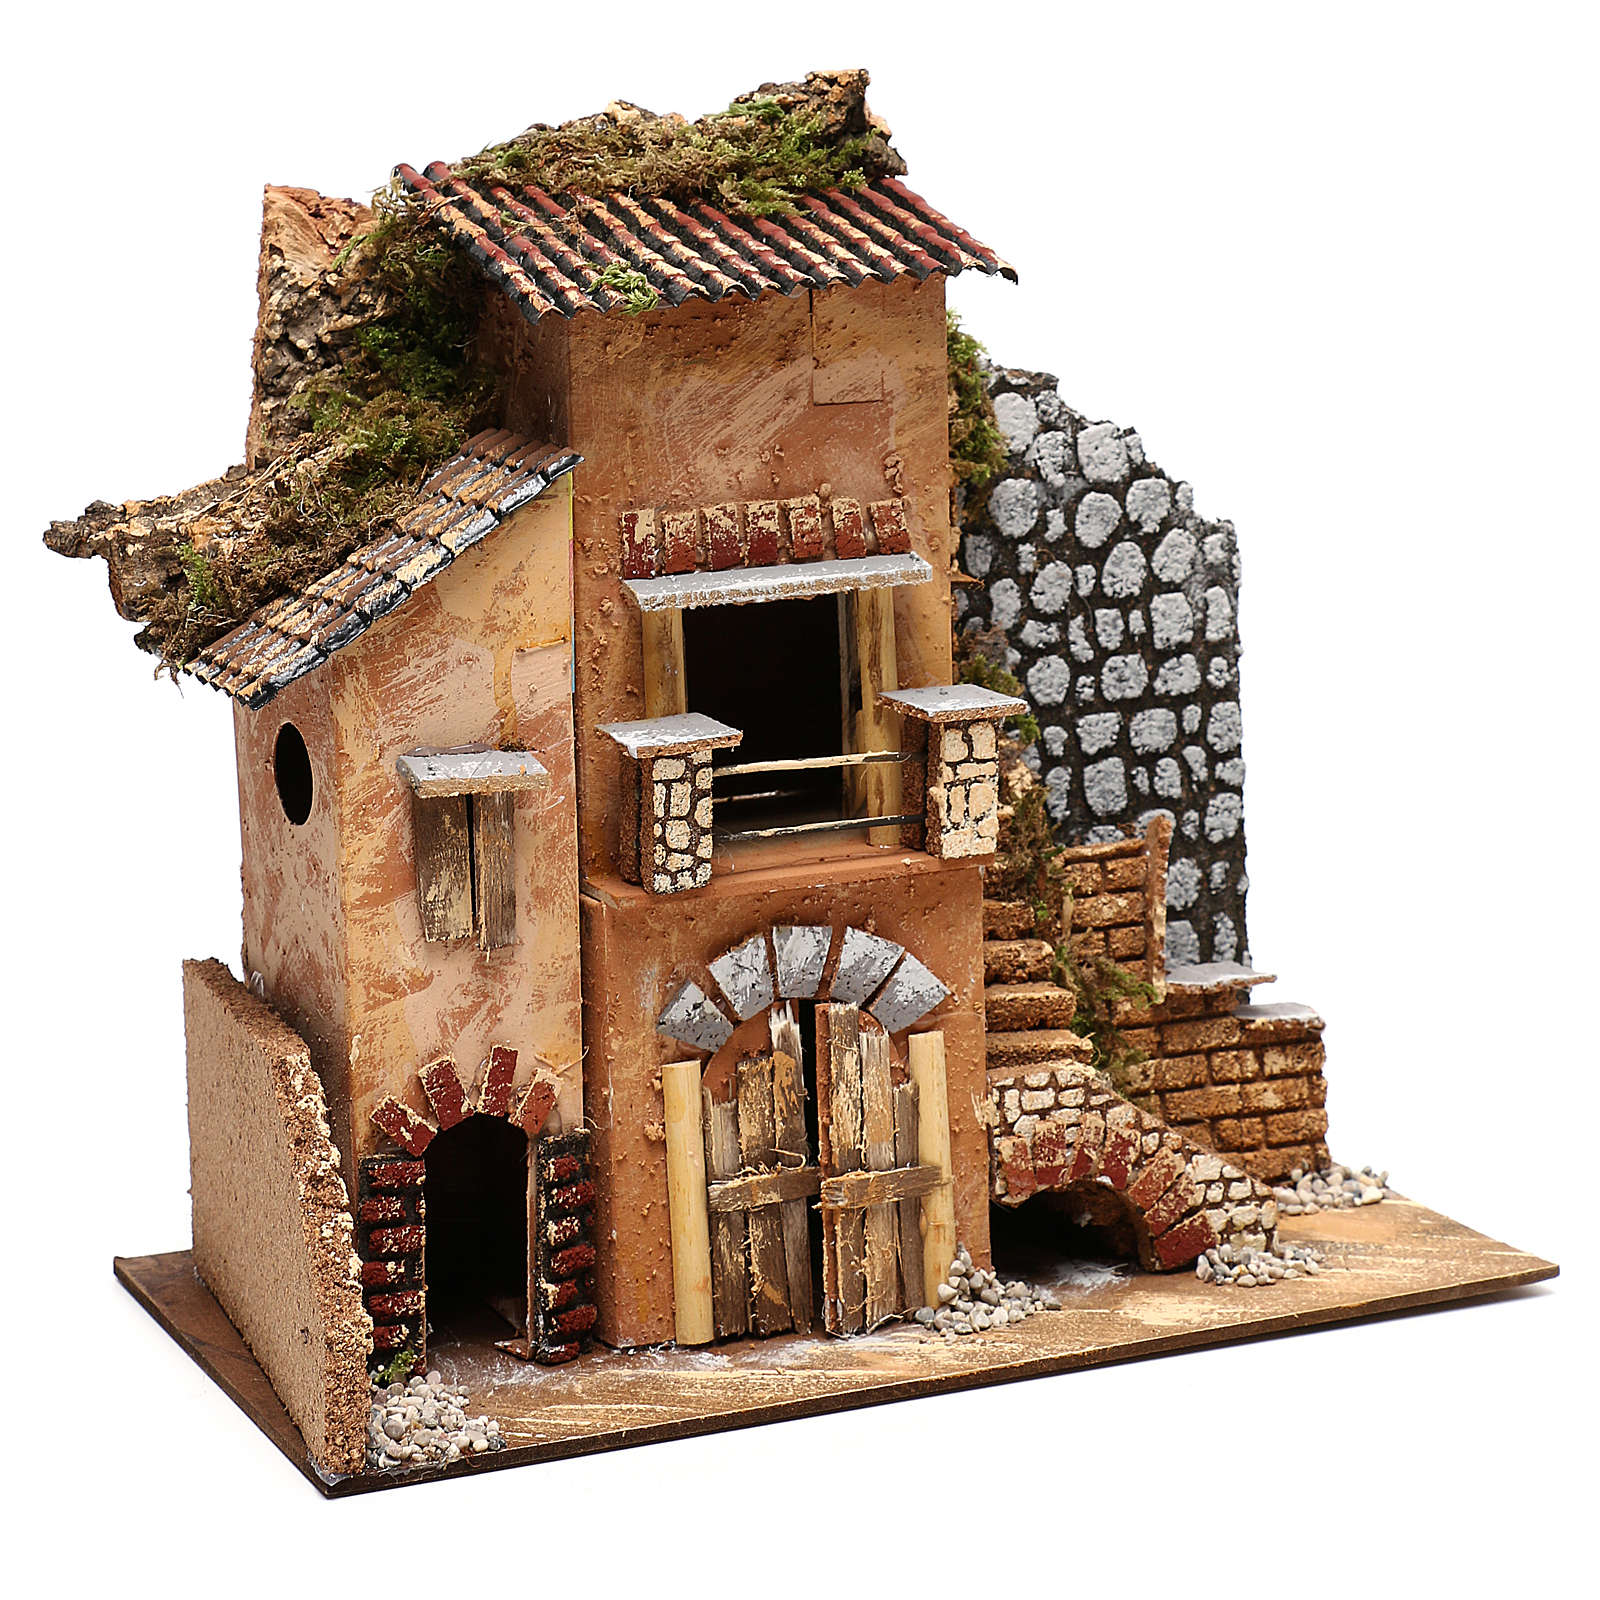 Cottage for Nativity scene 20x35x30 cm for figurines 4-6 cm 4